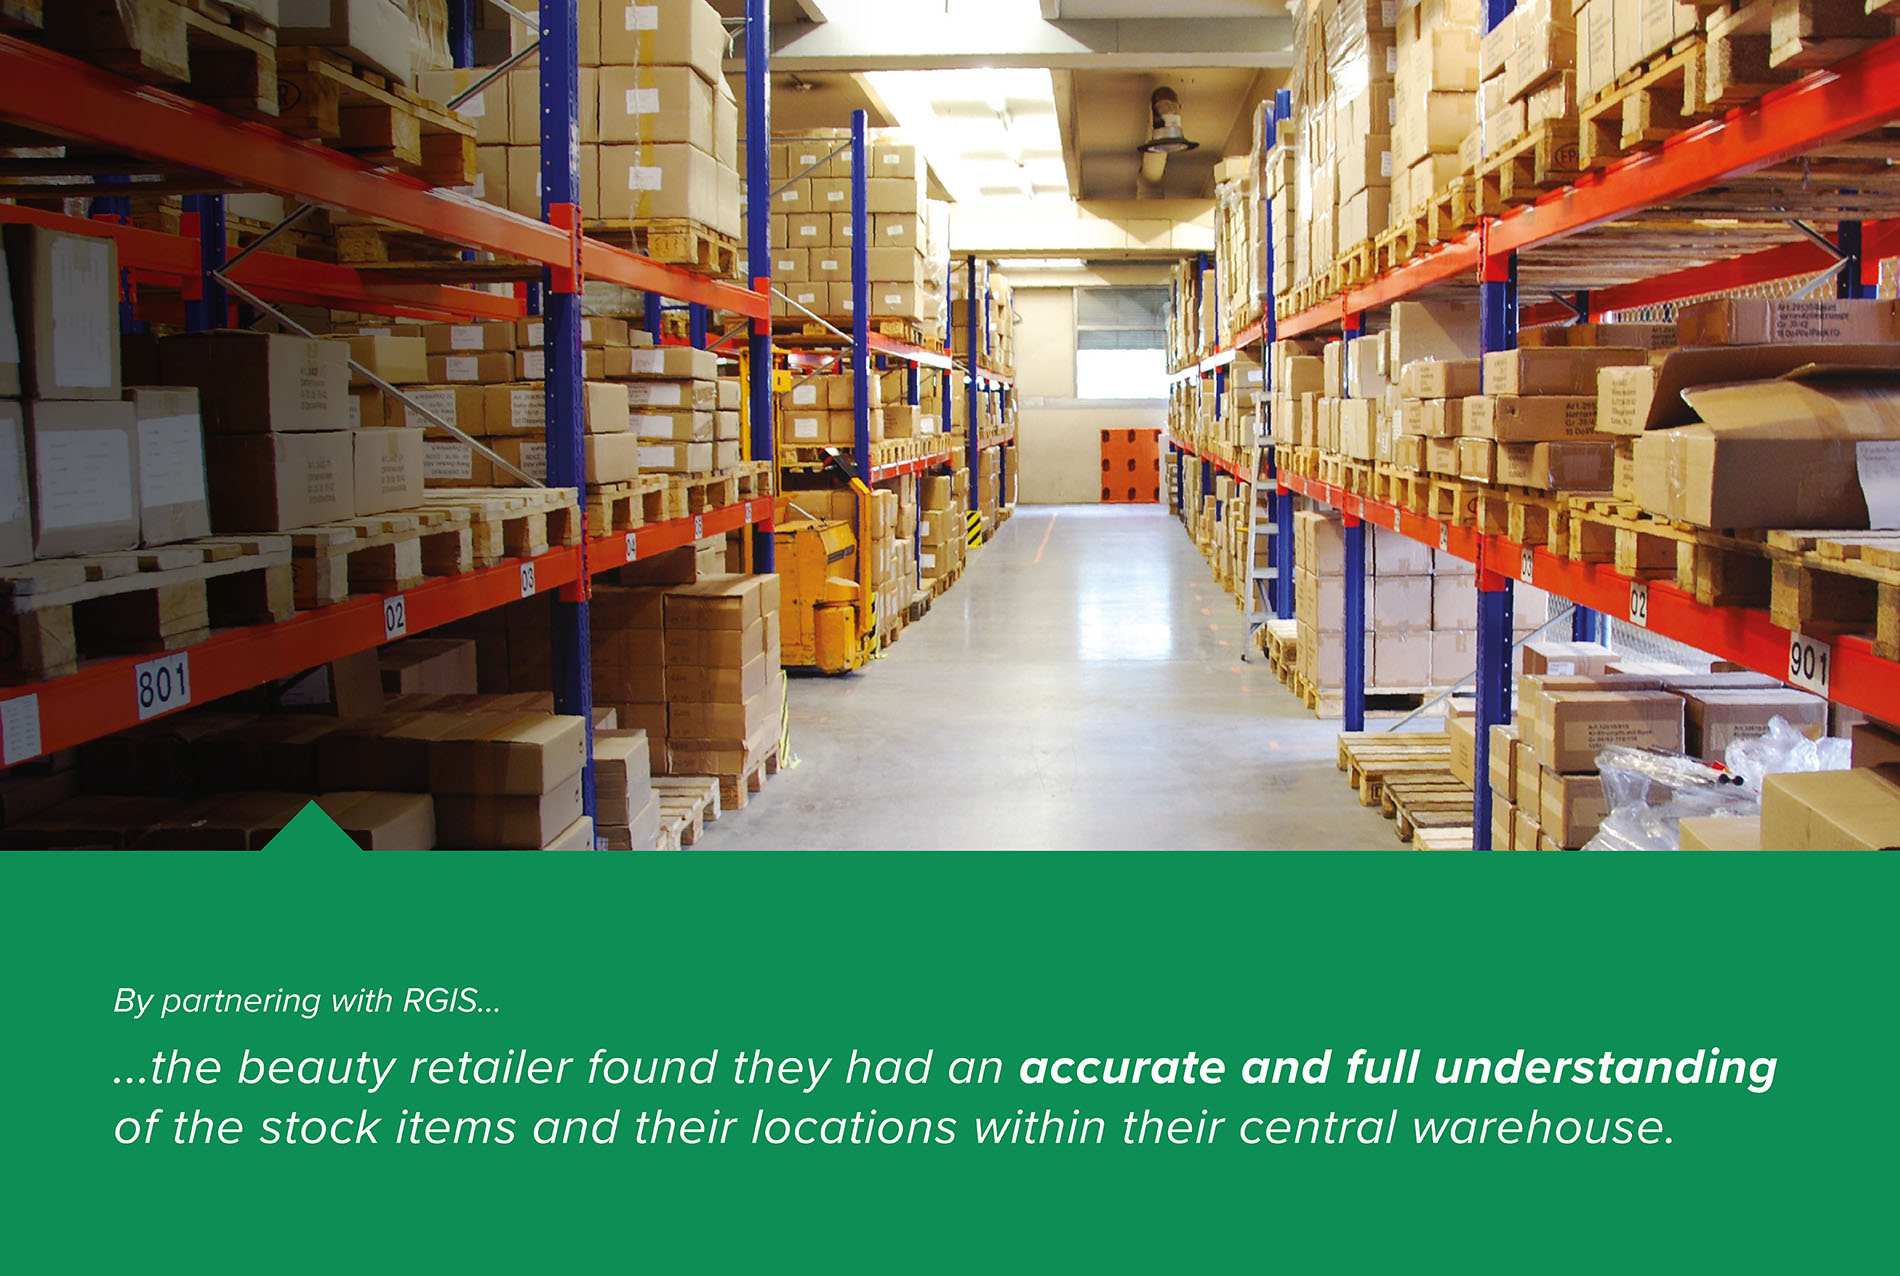 RGIS case study of Wall-To-Wall Inventory Count At Central Warehouse